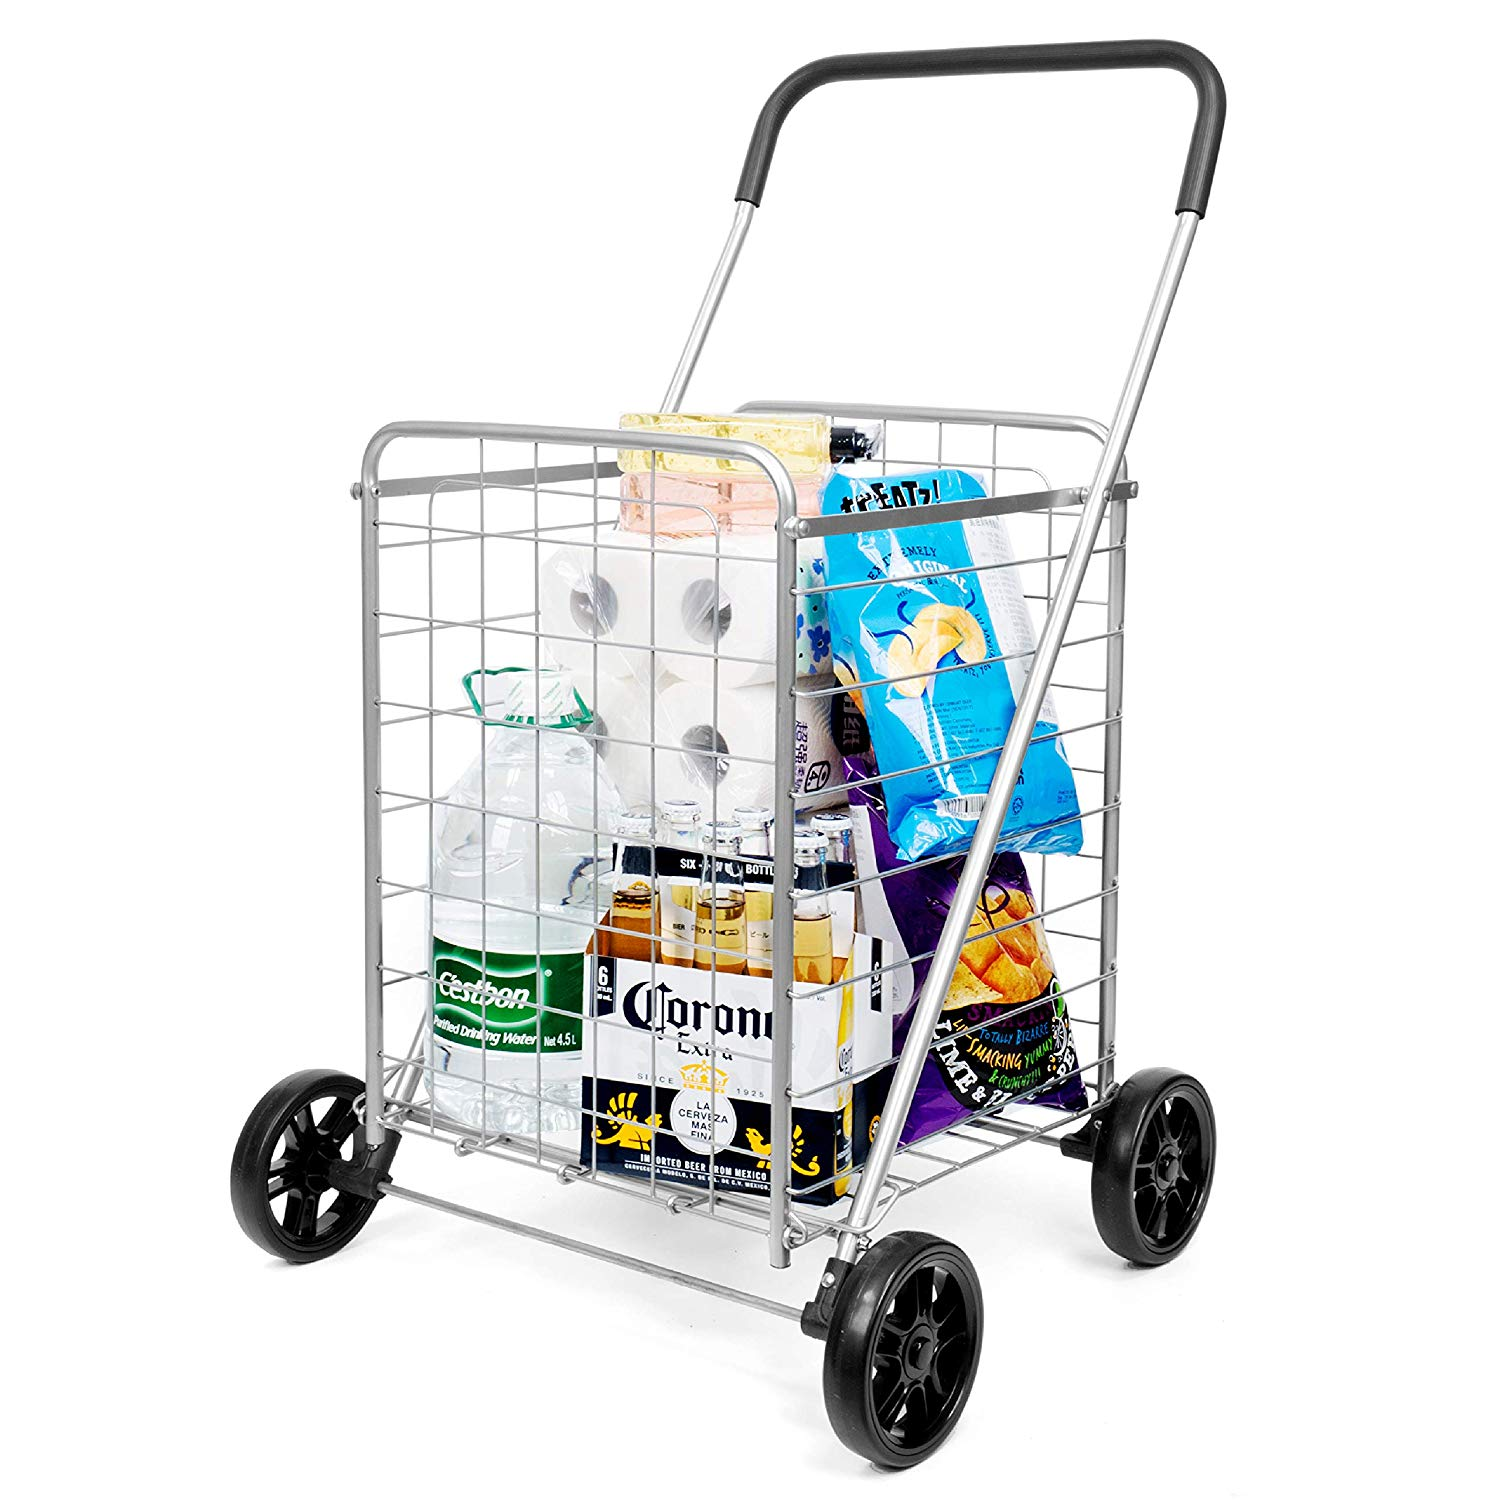 This cart is big enough to carry a Mac Pro, and some groceries.